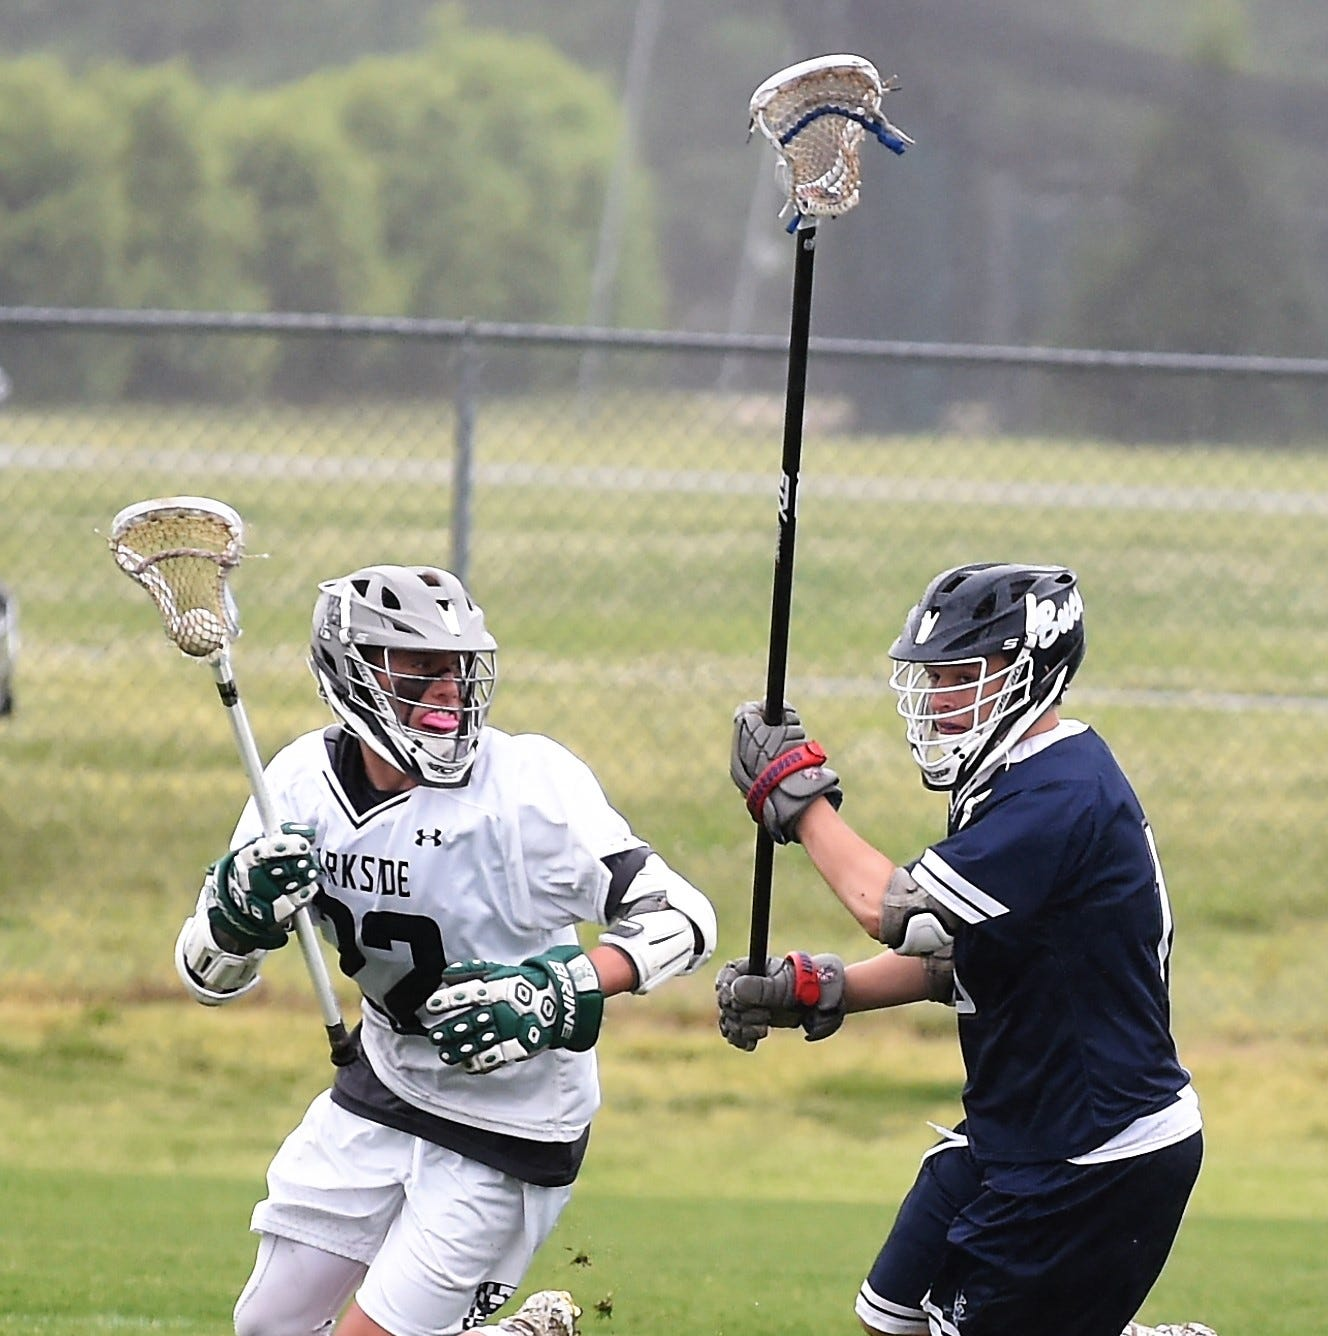 'Time for a title': Historic win gives Parkside boys lacrosse hopes of state championship